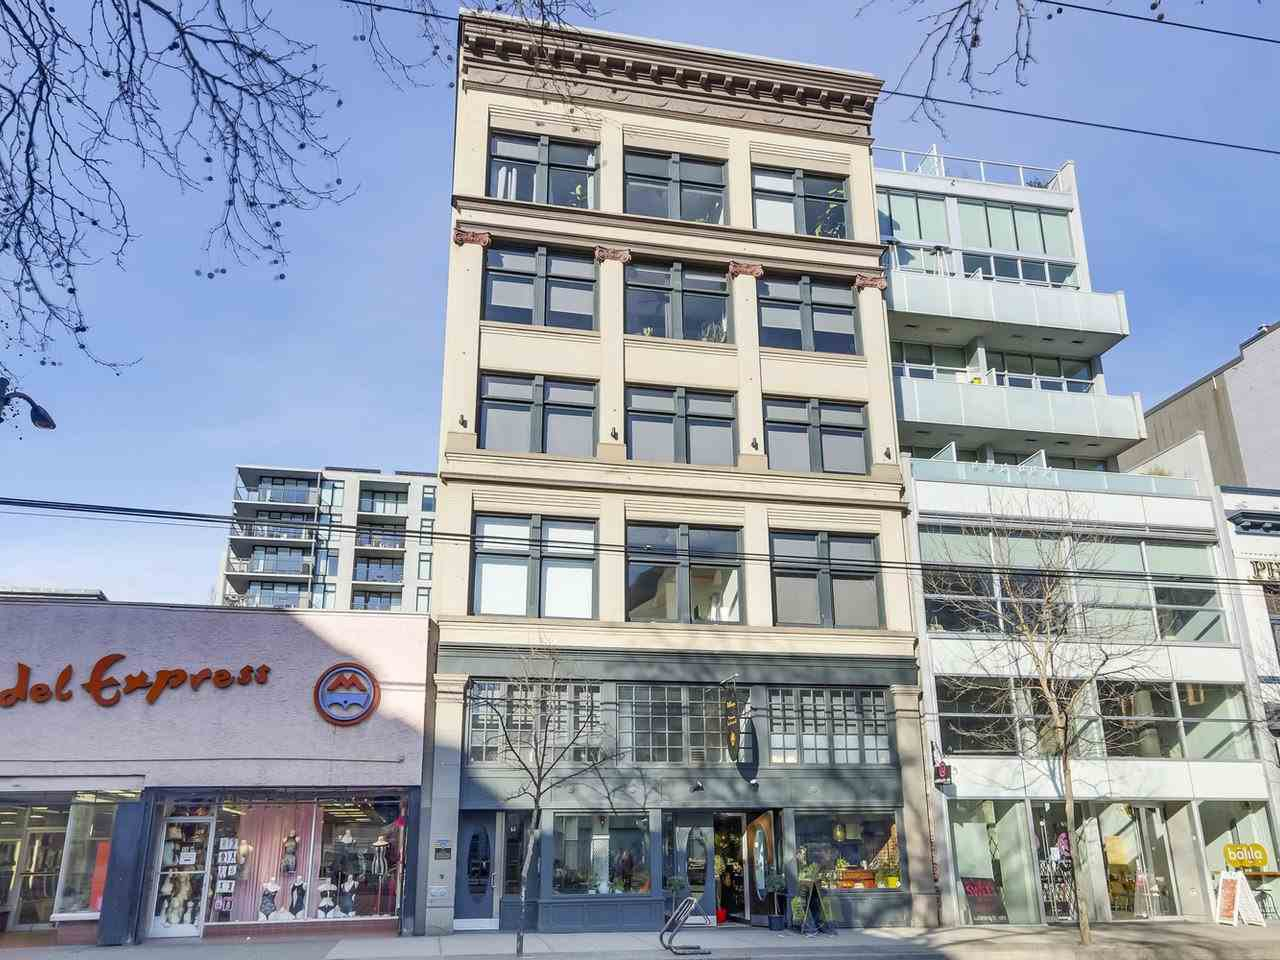 "Main Photo: 404 53 W HASTINGS Street in Vancouver: Downtown VW Condo for sale in ""The Paris Block"" (Vancouver West)  : MLS®# R2408183"